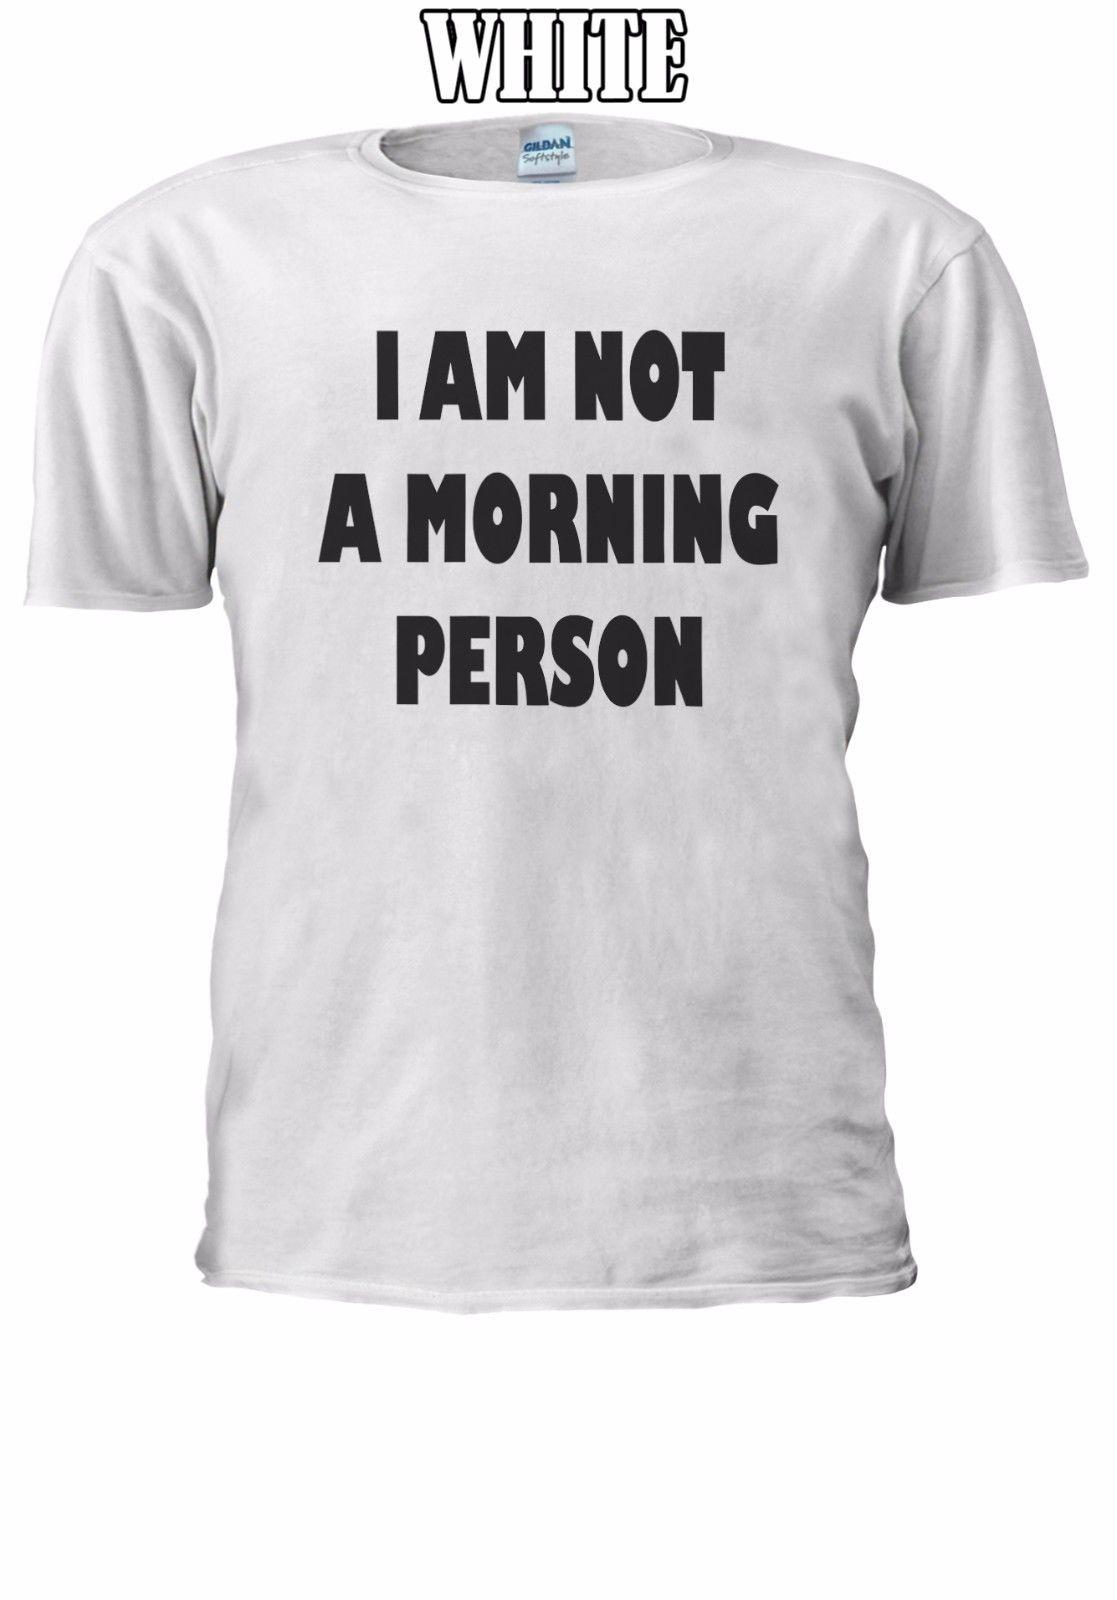 f4bdf3d9f0 I Am Not A Morning Person Tumblr T Shirt Vest Tank Top Men Women Unisex  1041 Funny Casual Tshirt Top Quirky T Shirts Hilarious Shirts From  Basementcloseouts ...